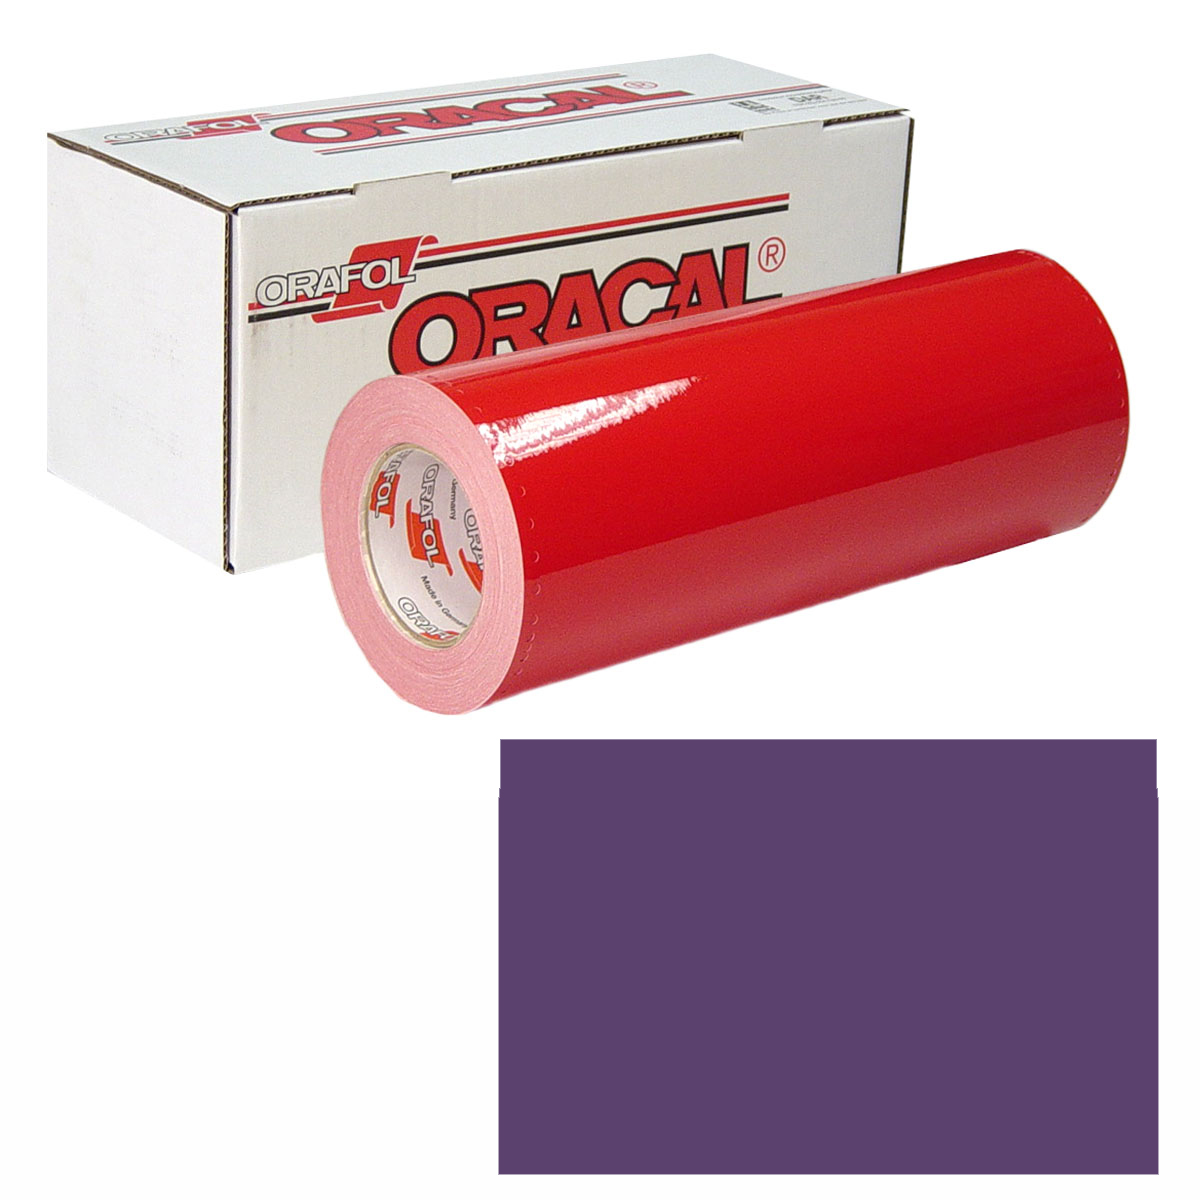 ORACAL 951M Unp 48in X 10yd 406 Violet